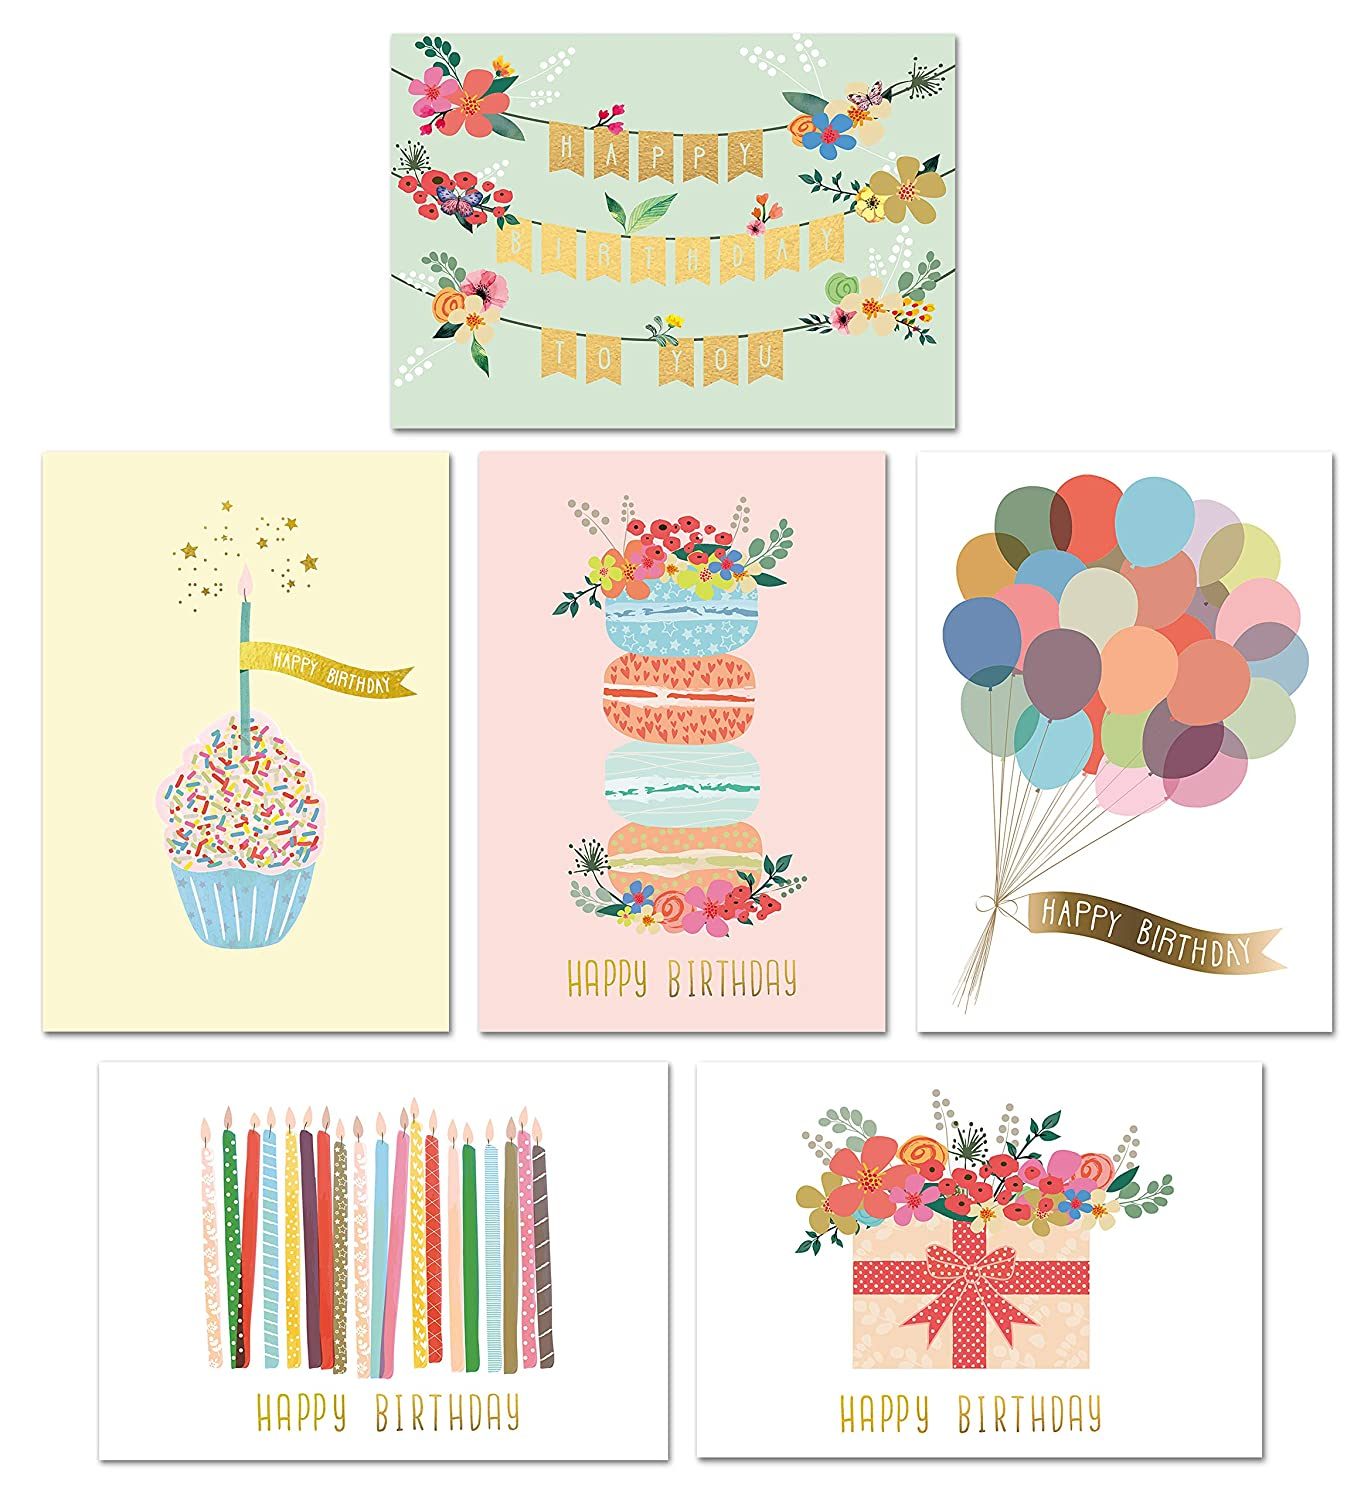 NEW Assorted Lot of 20 Happy Birthday greeting Cards with matching envelopes.